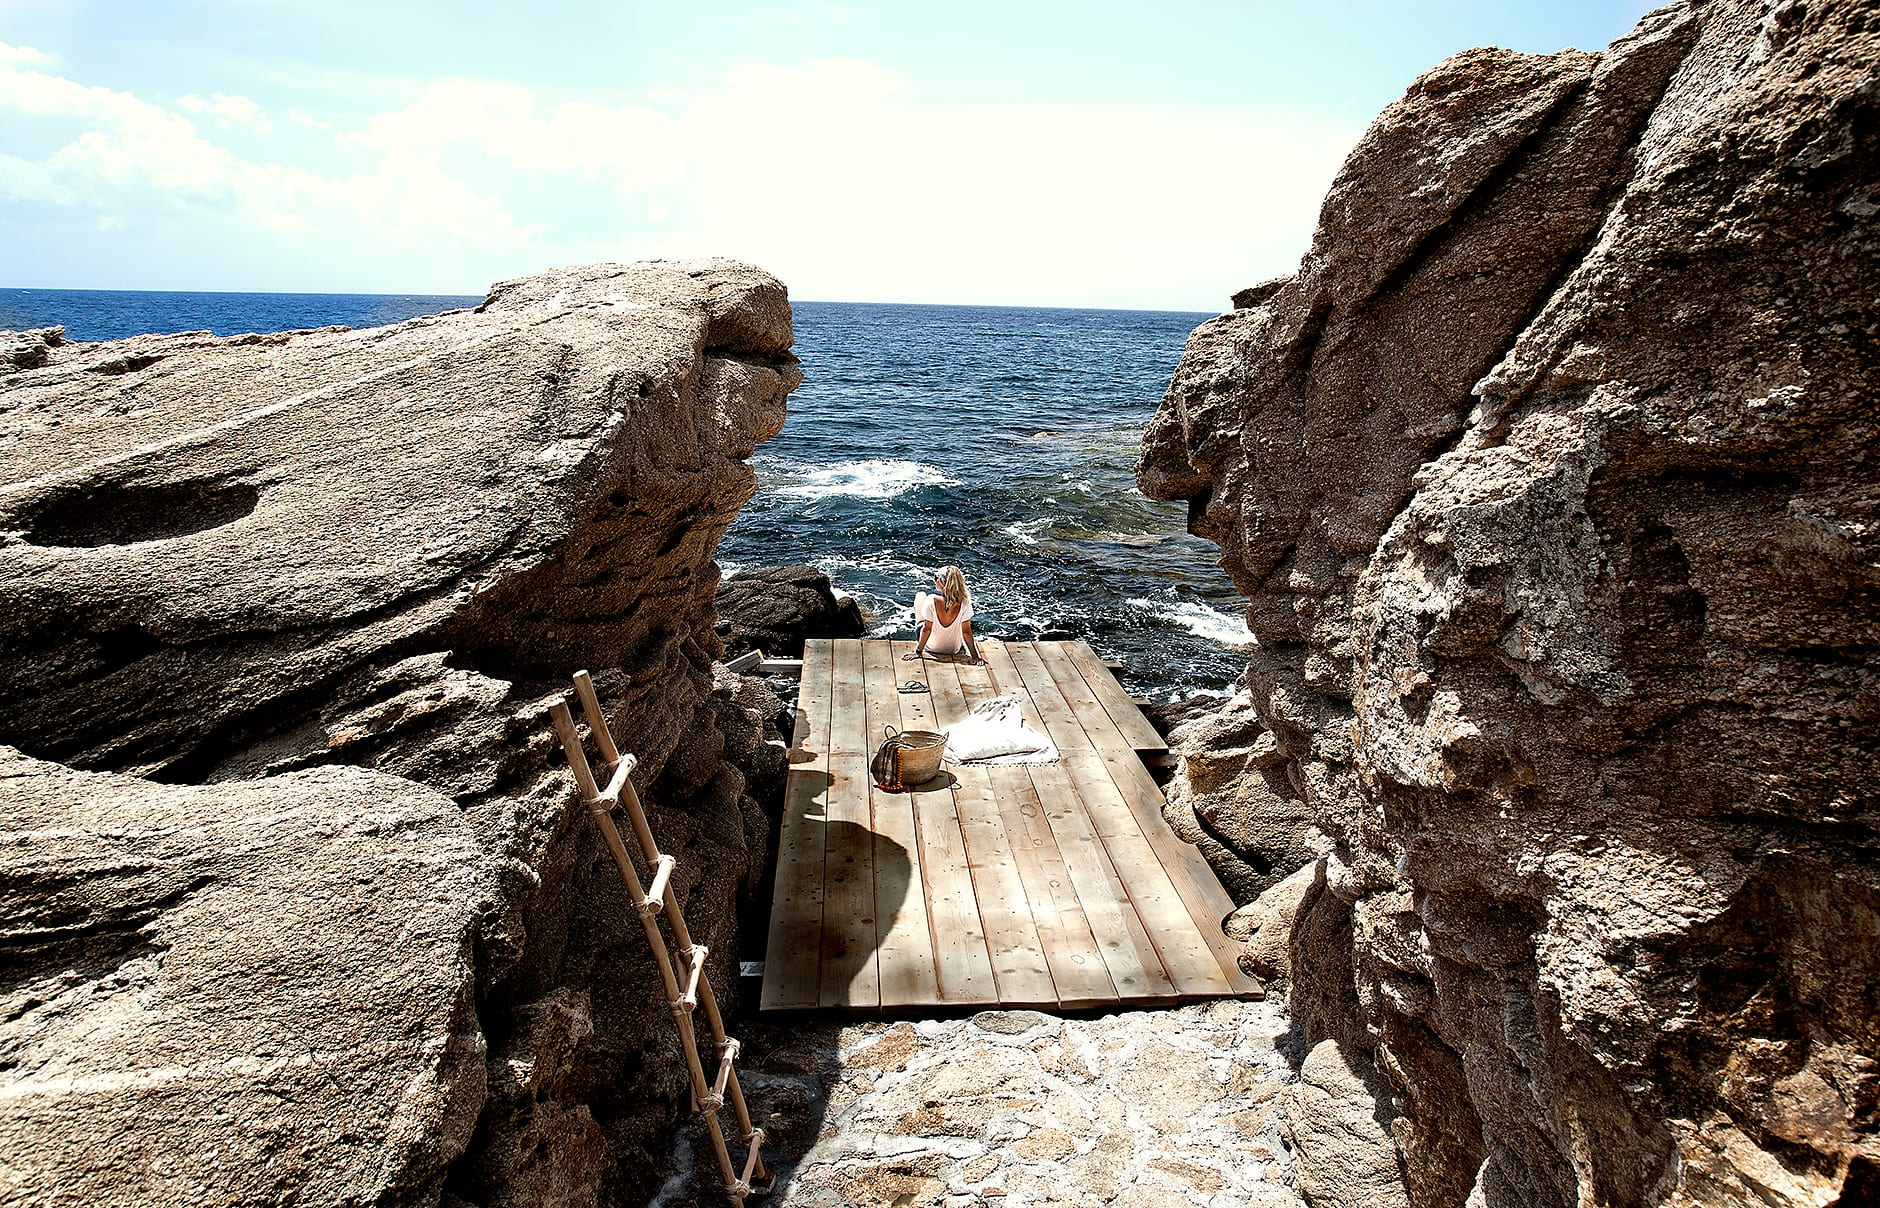 The Beach. San Giorgio Mykonos a Design Hotels™ Project, Greece. © SAN GIORGIO